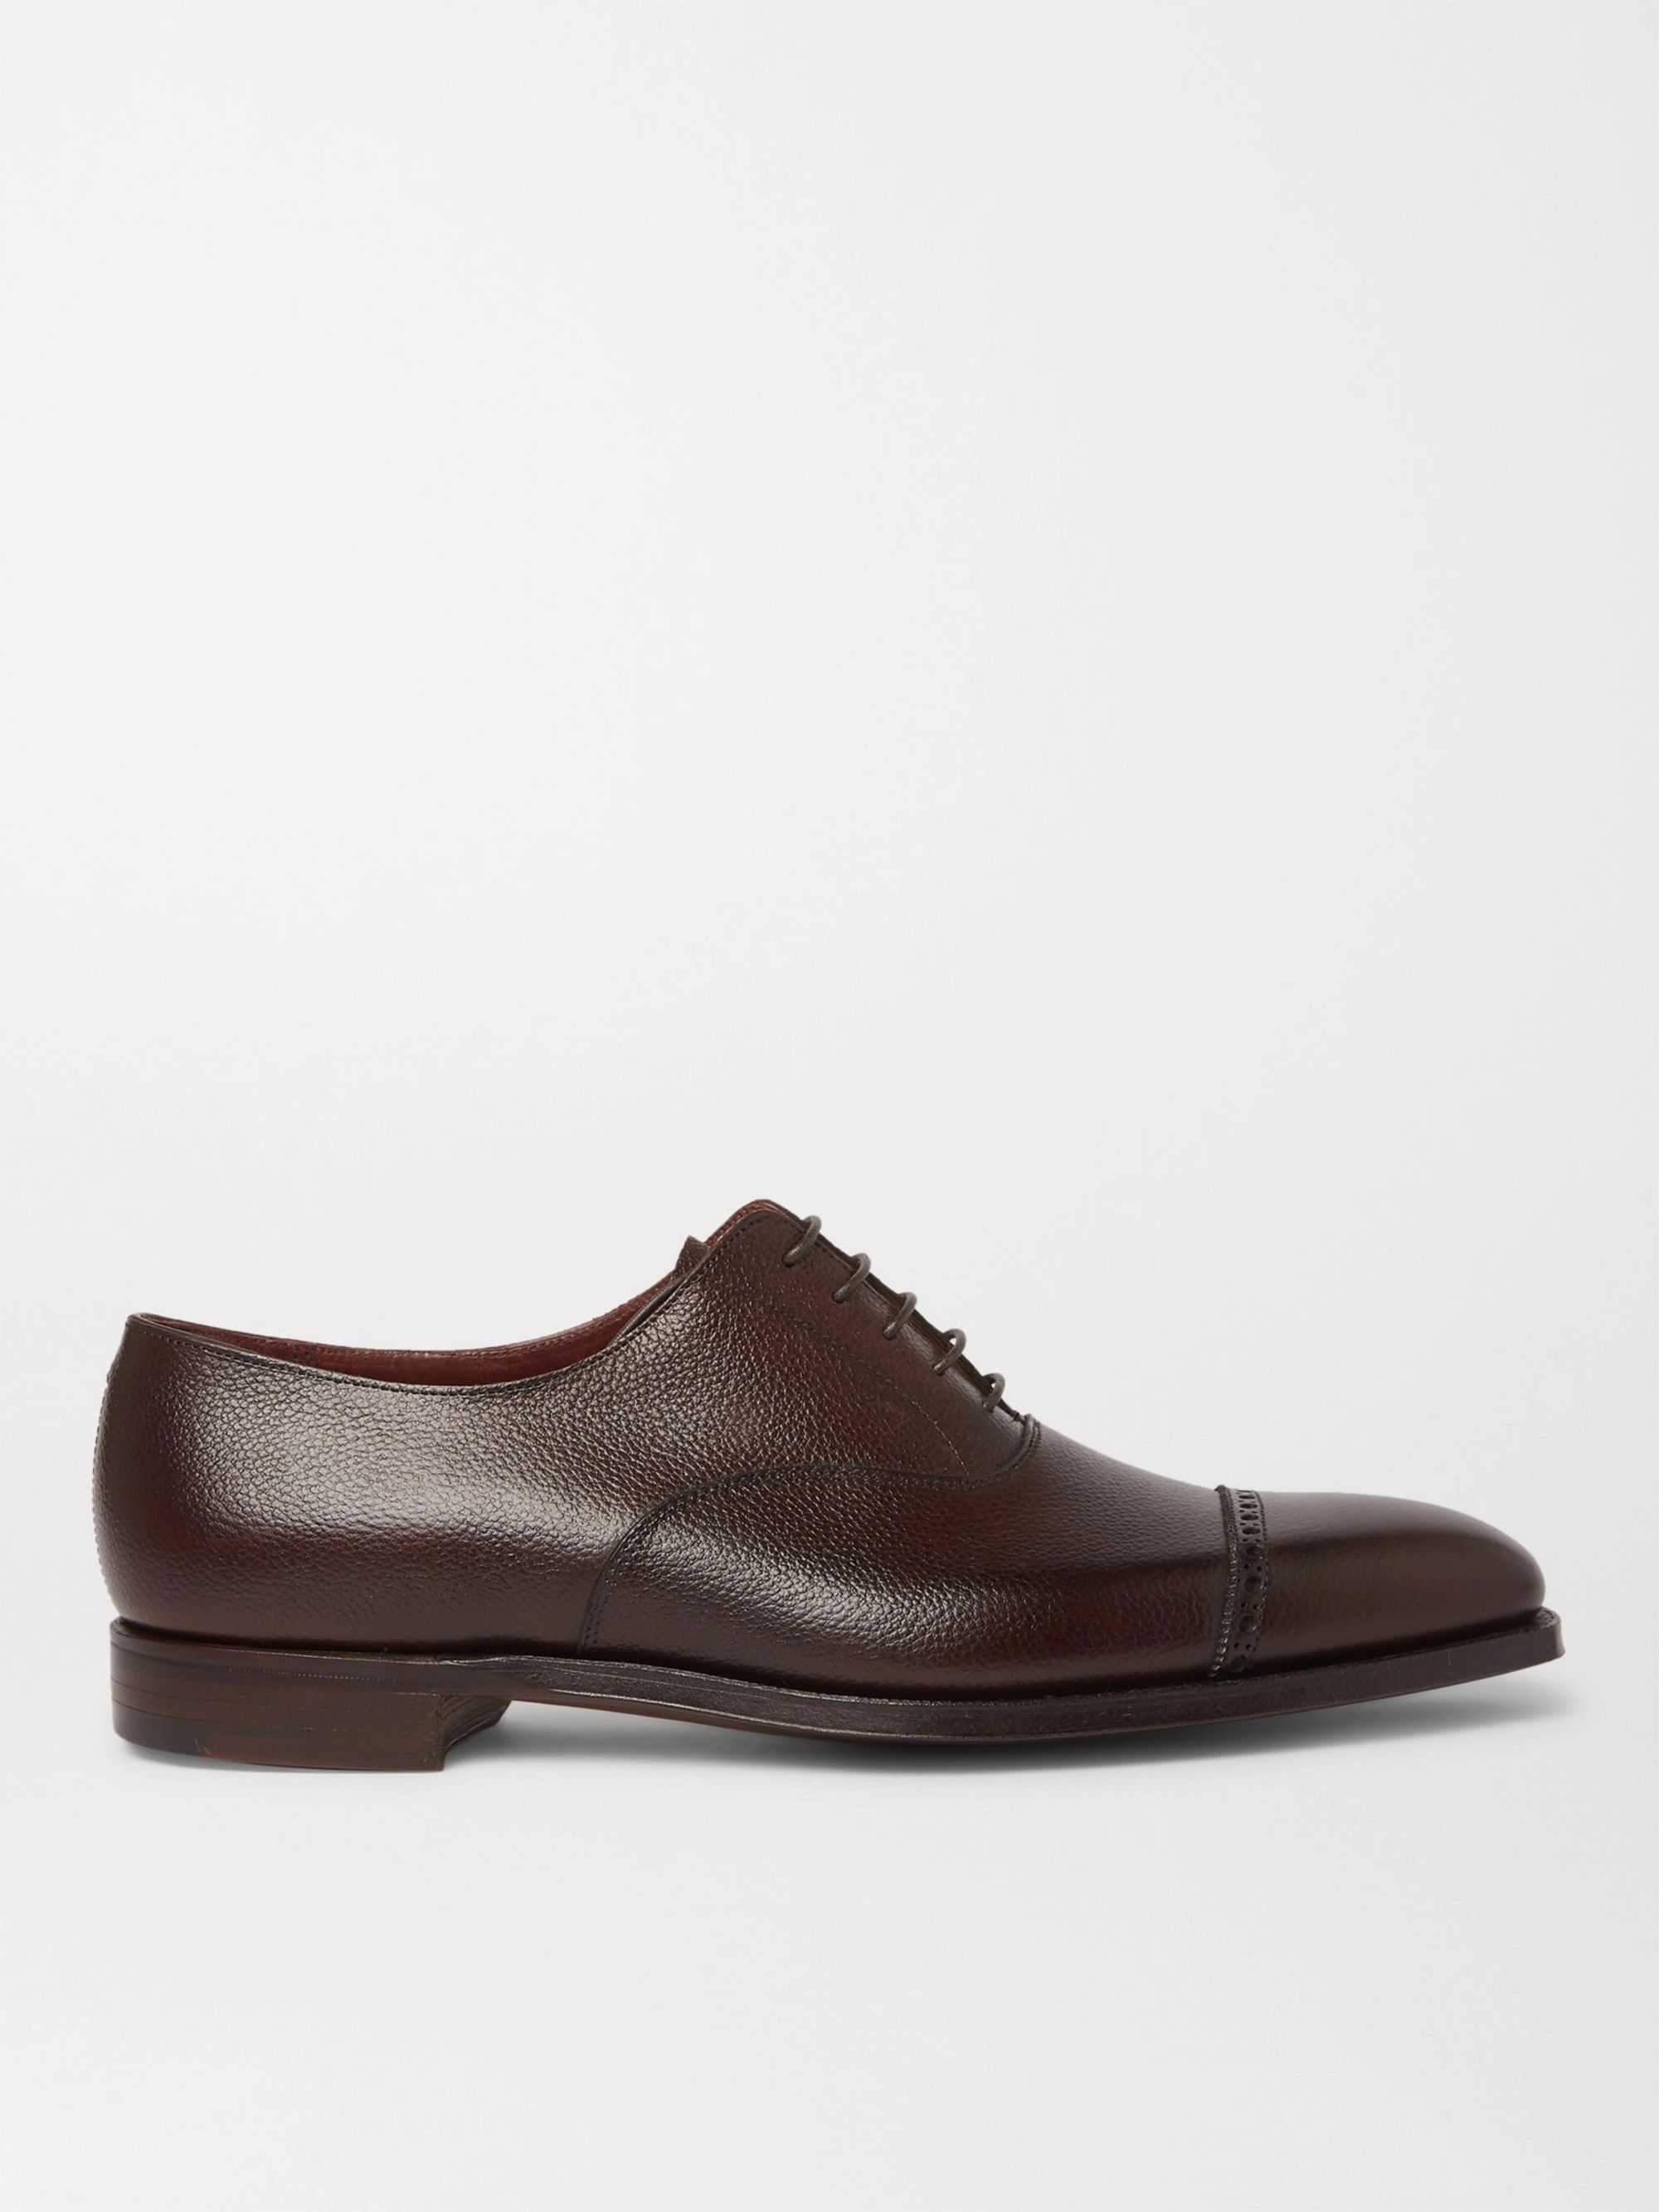 George Cleverley Charles Cap-Toe Full-Grain Leather Oxford Shoes